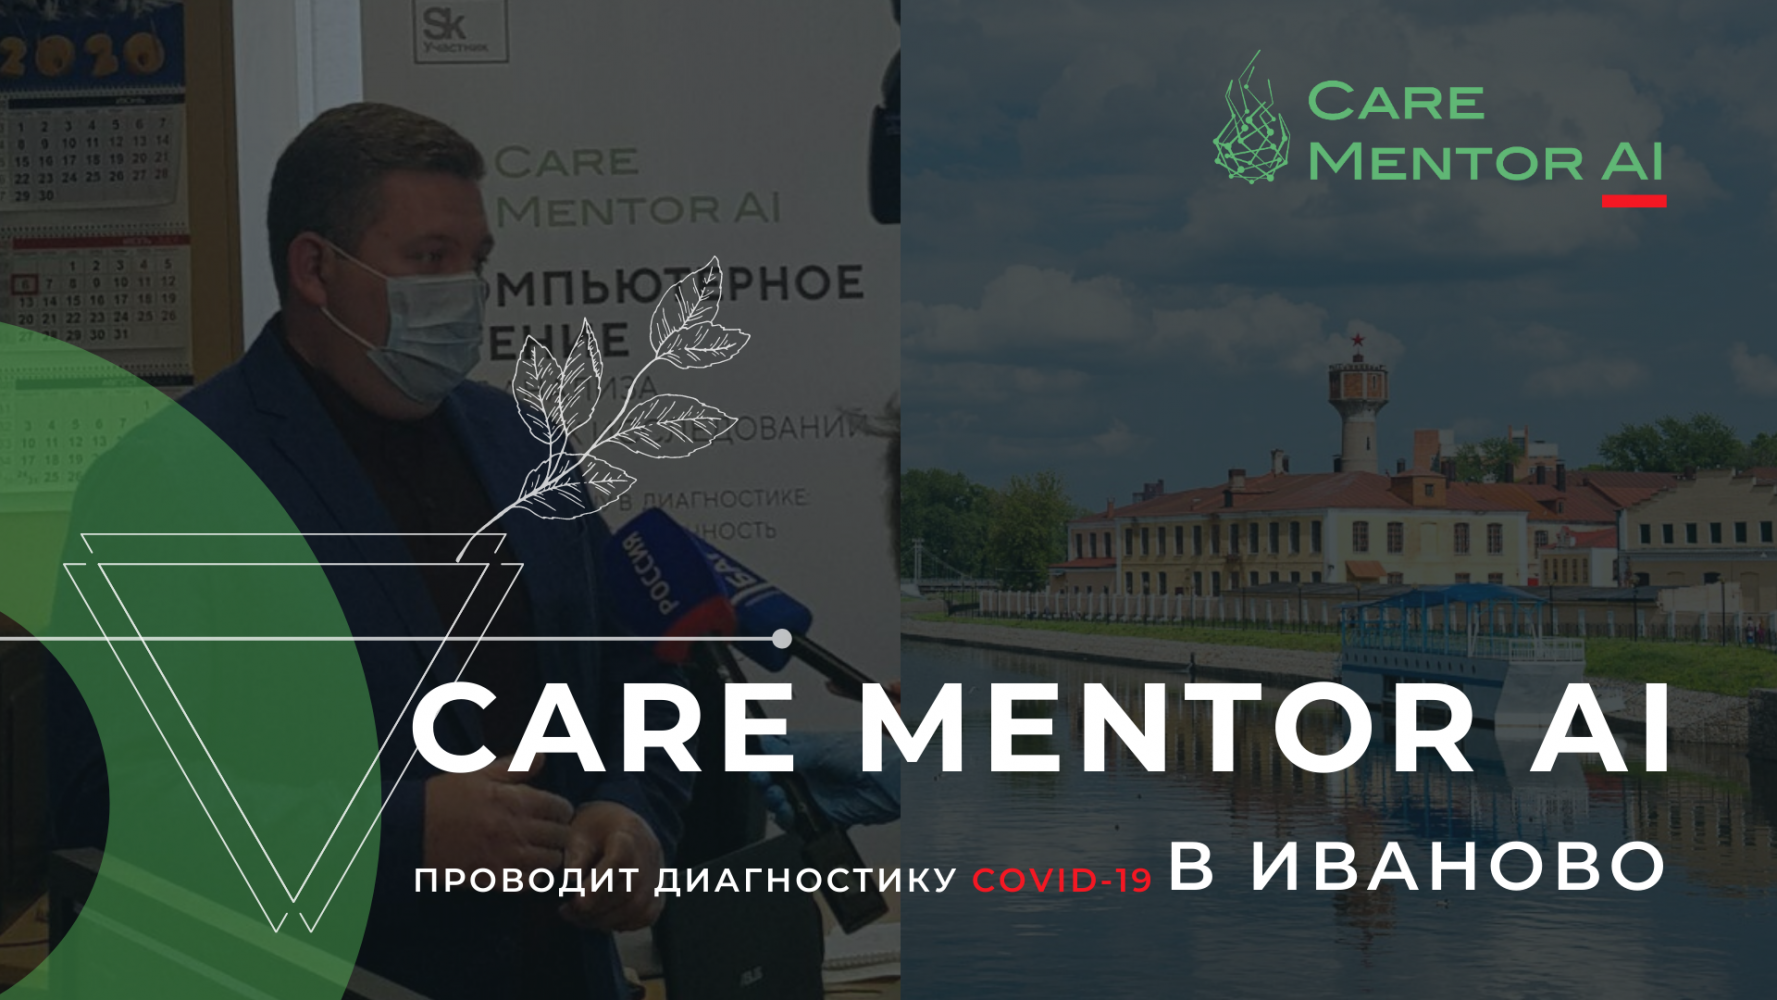 ИИ «Care Mentor AI» теперь и в Ивановской области